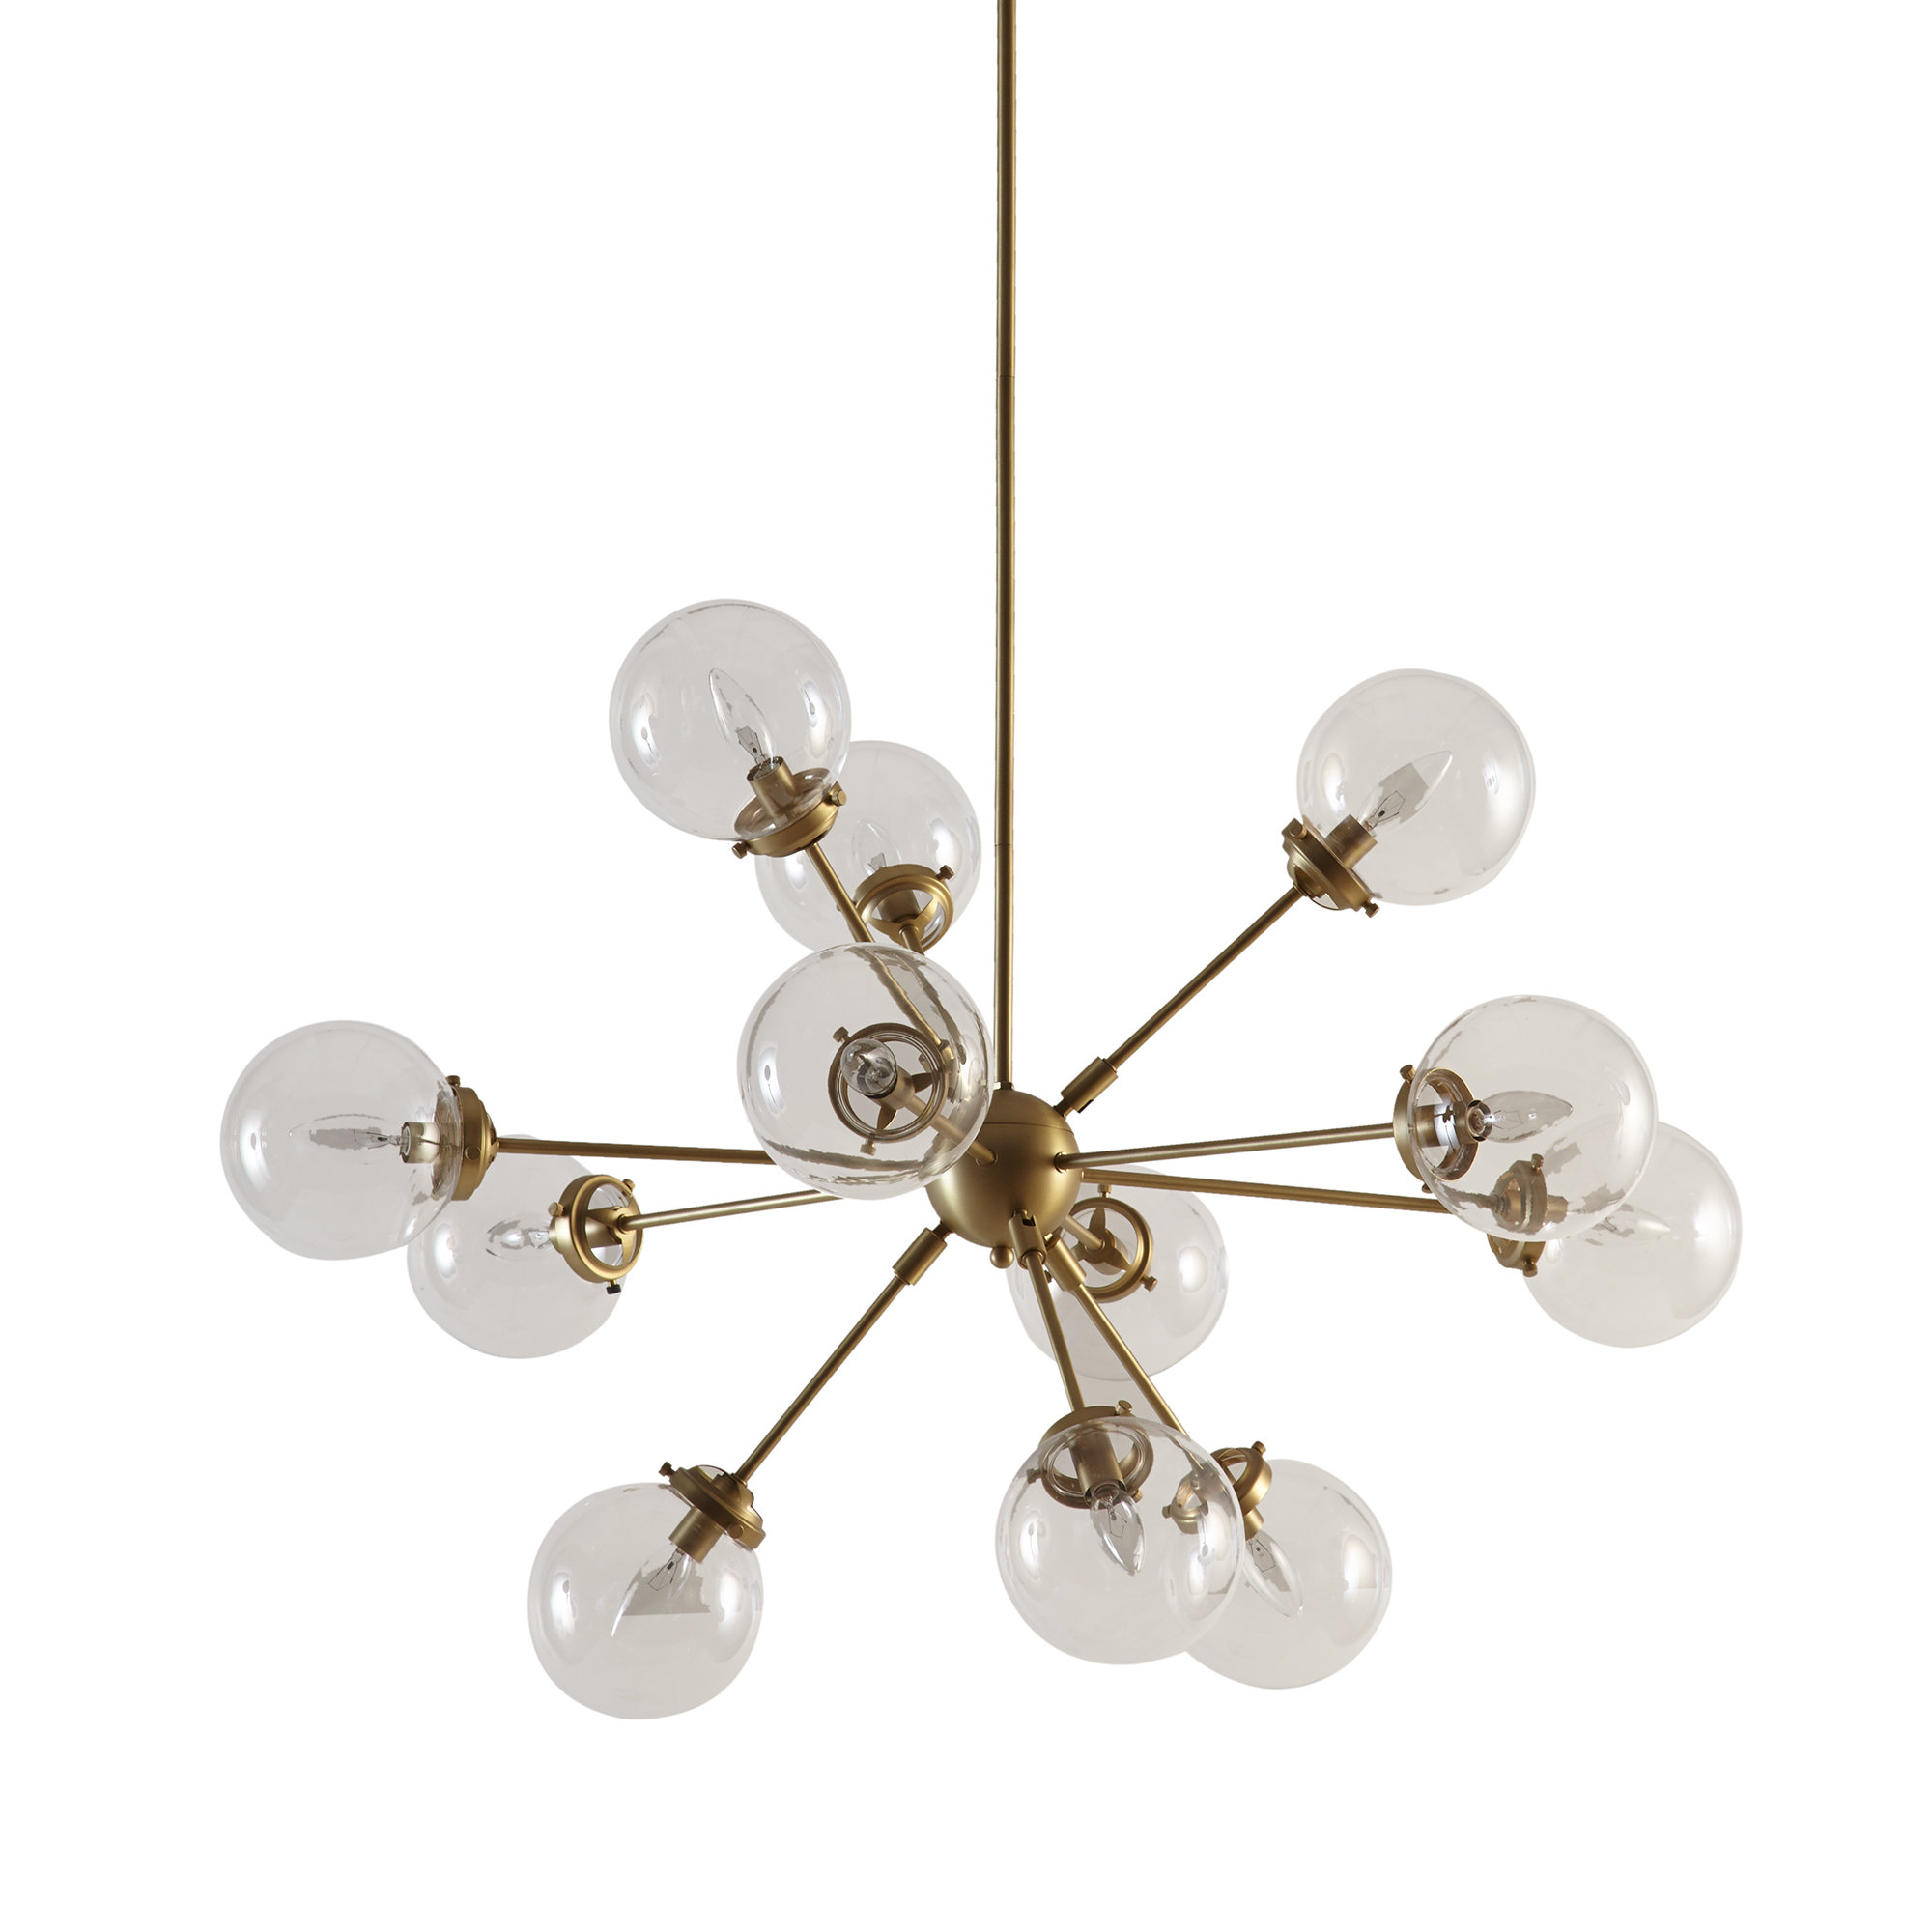 Allmodern With Regard To Best And Newest Everett 10 Light Sputnik Chandeliers (View 3 of 25)